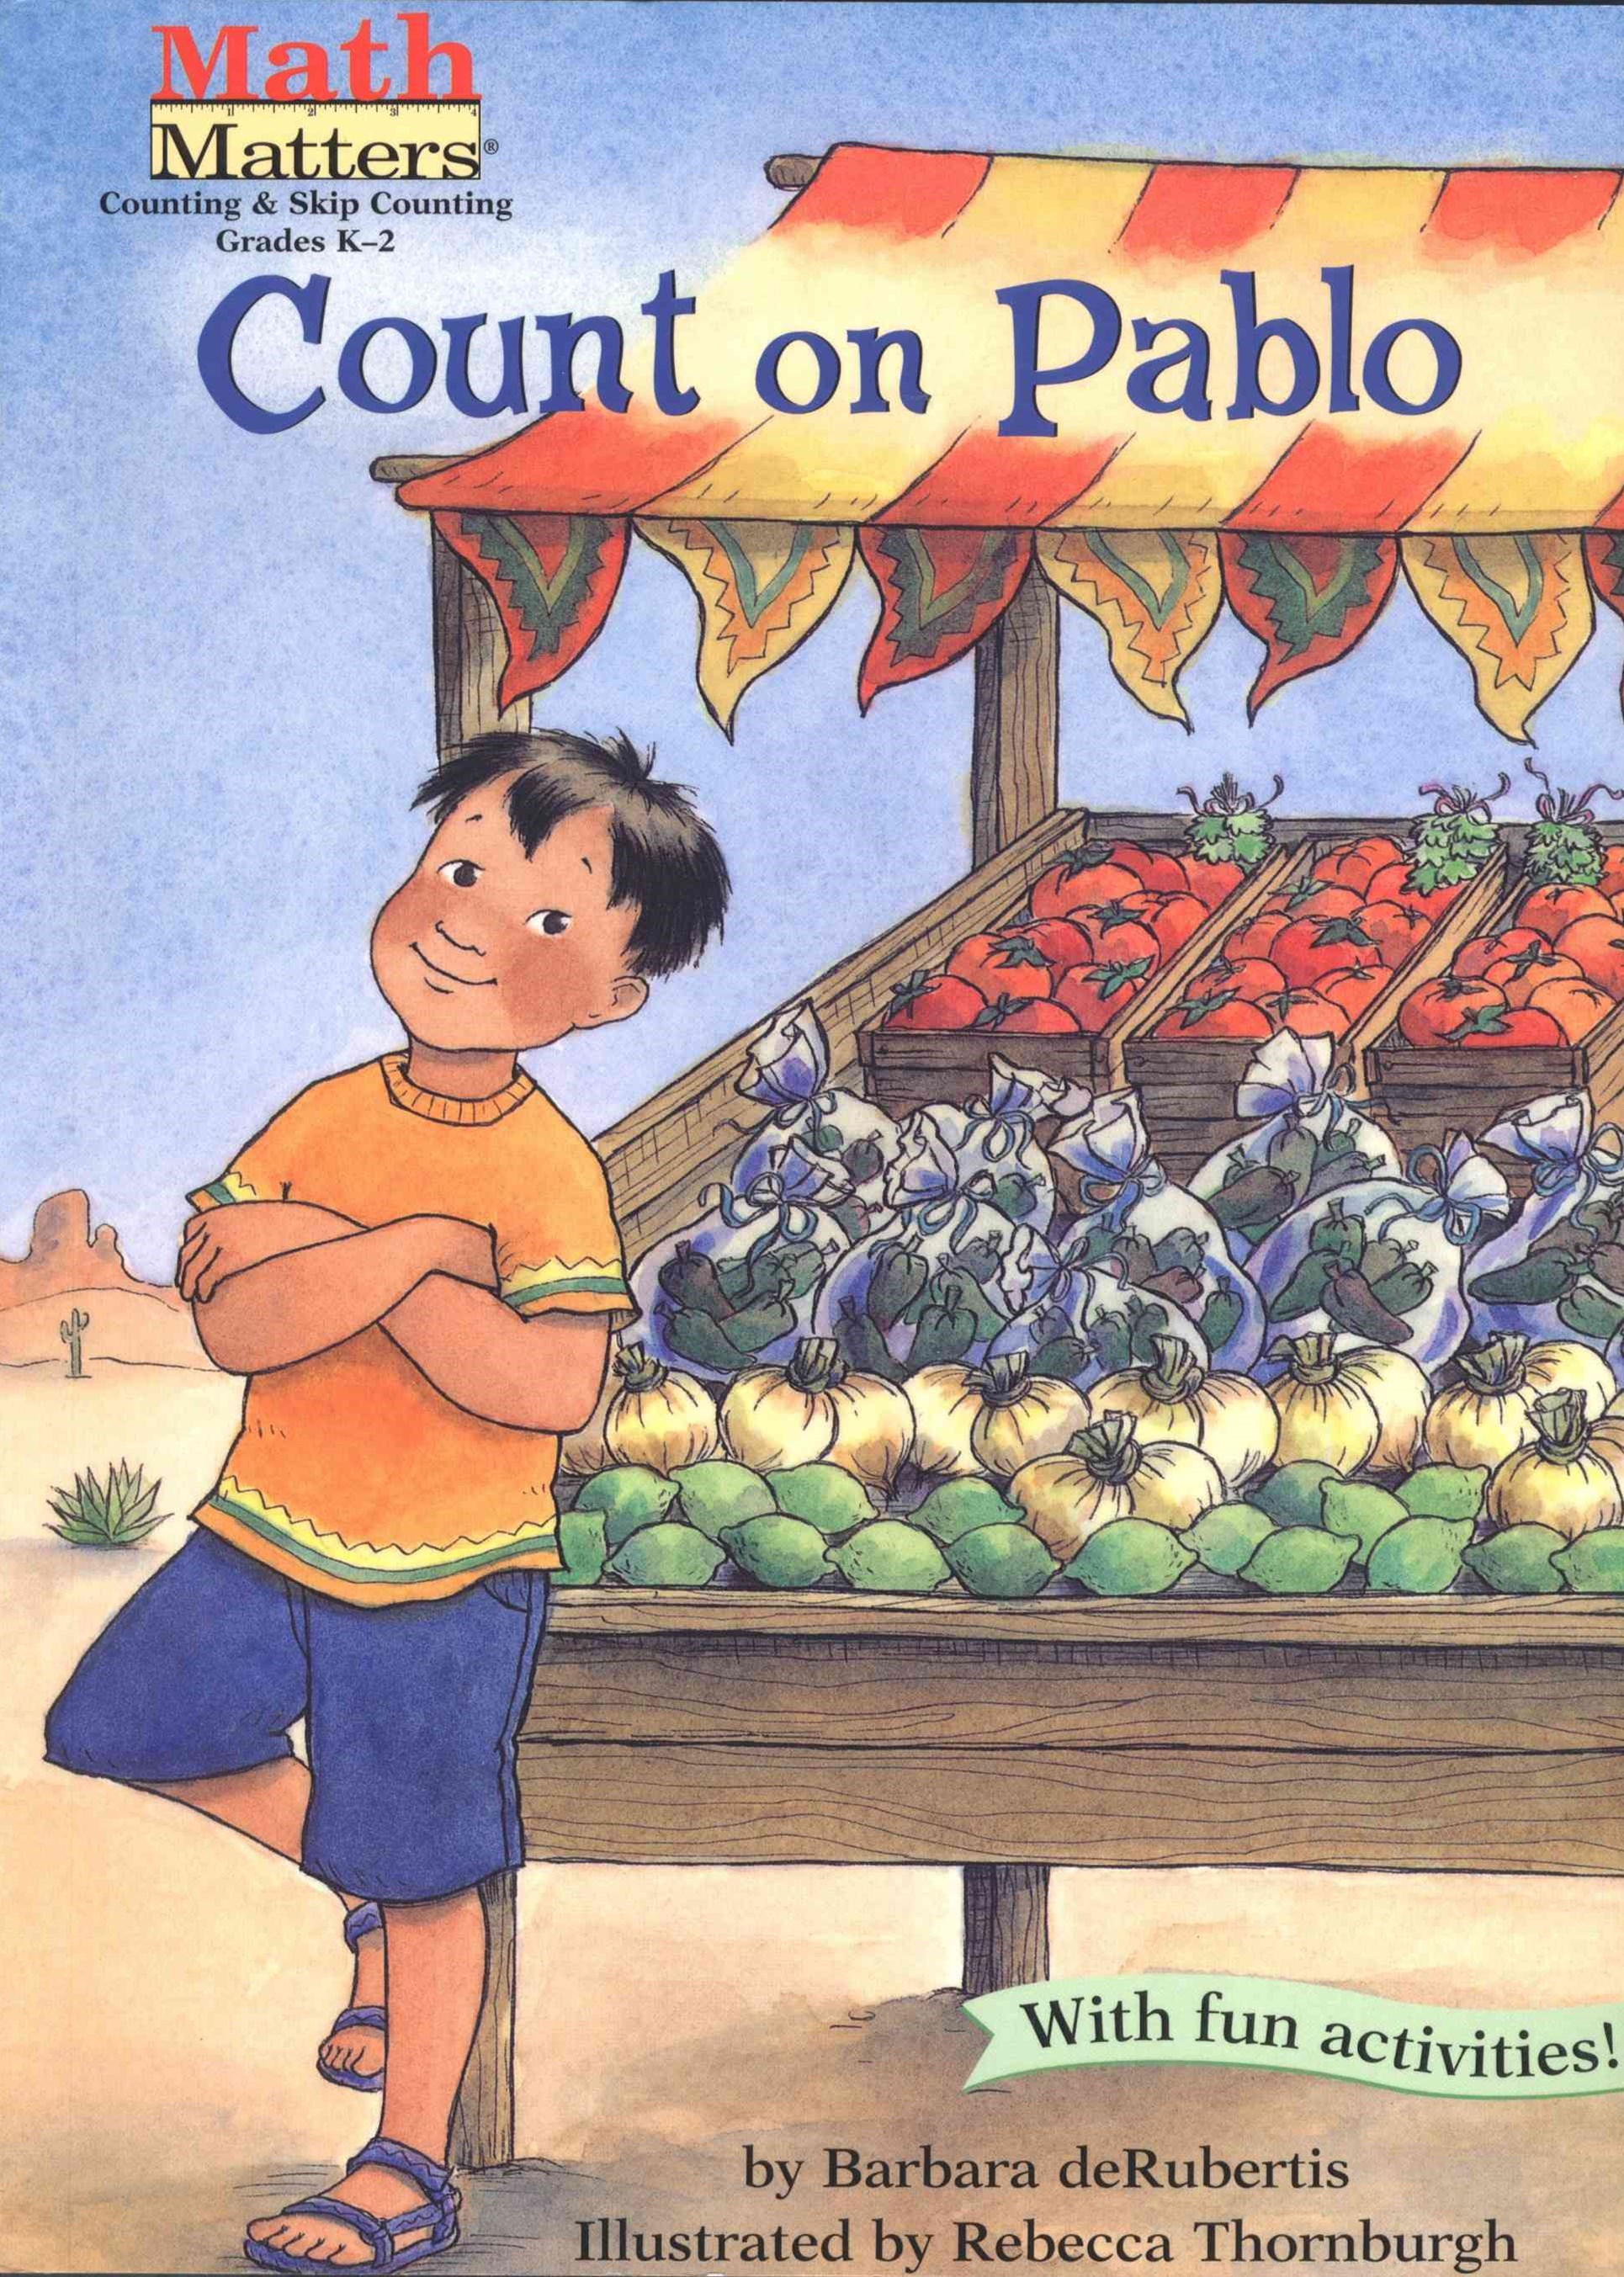 Count on Pablo - PB Math Matters Skip Counting